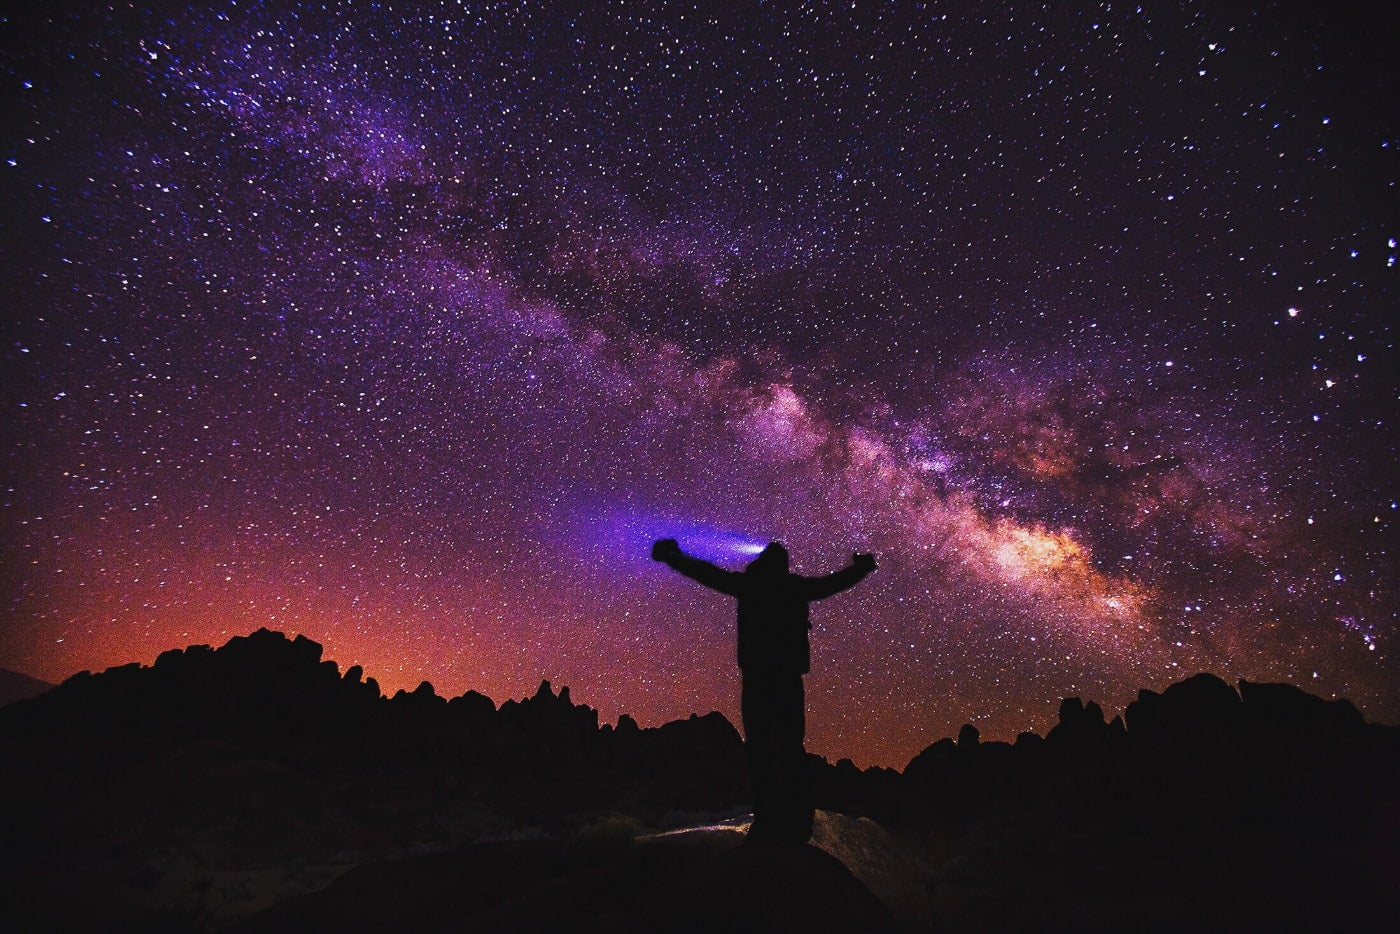 a silhouette of person with arms raised and a headlight beam shining on a silhouetted landscape of rocky hills and a purple night sky filled with stars.